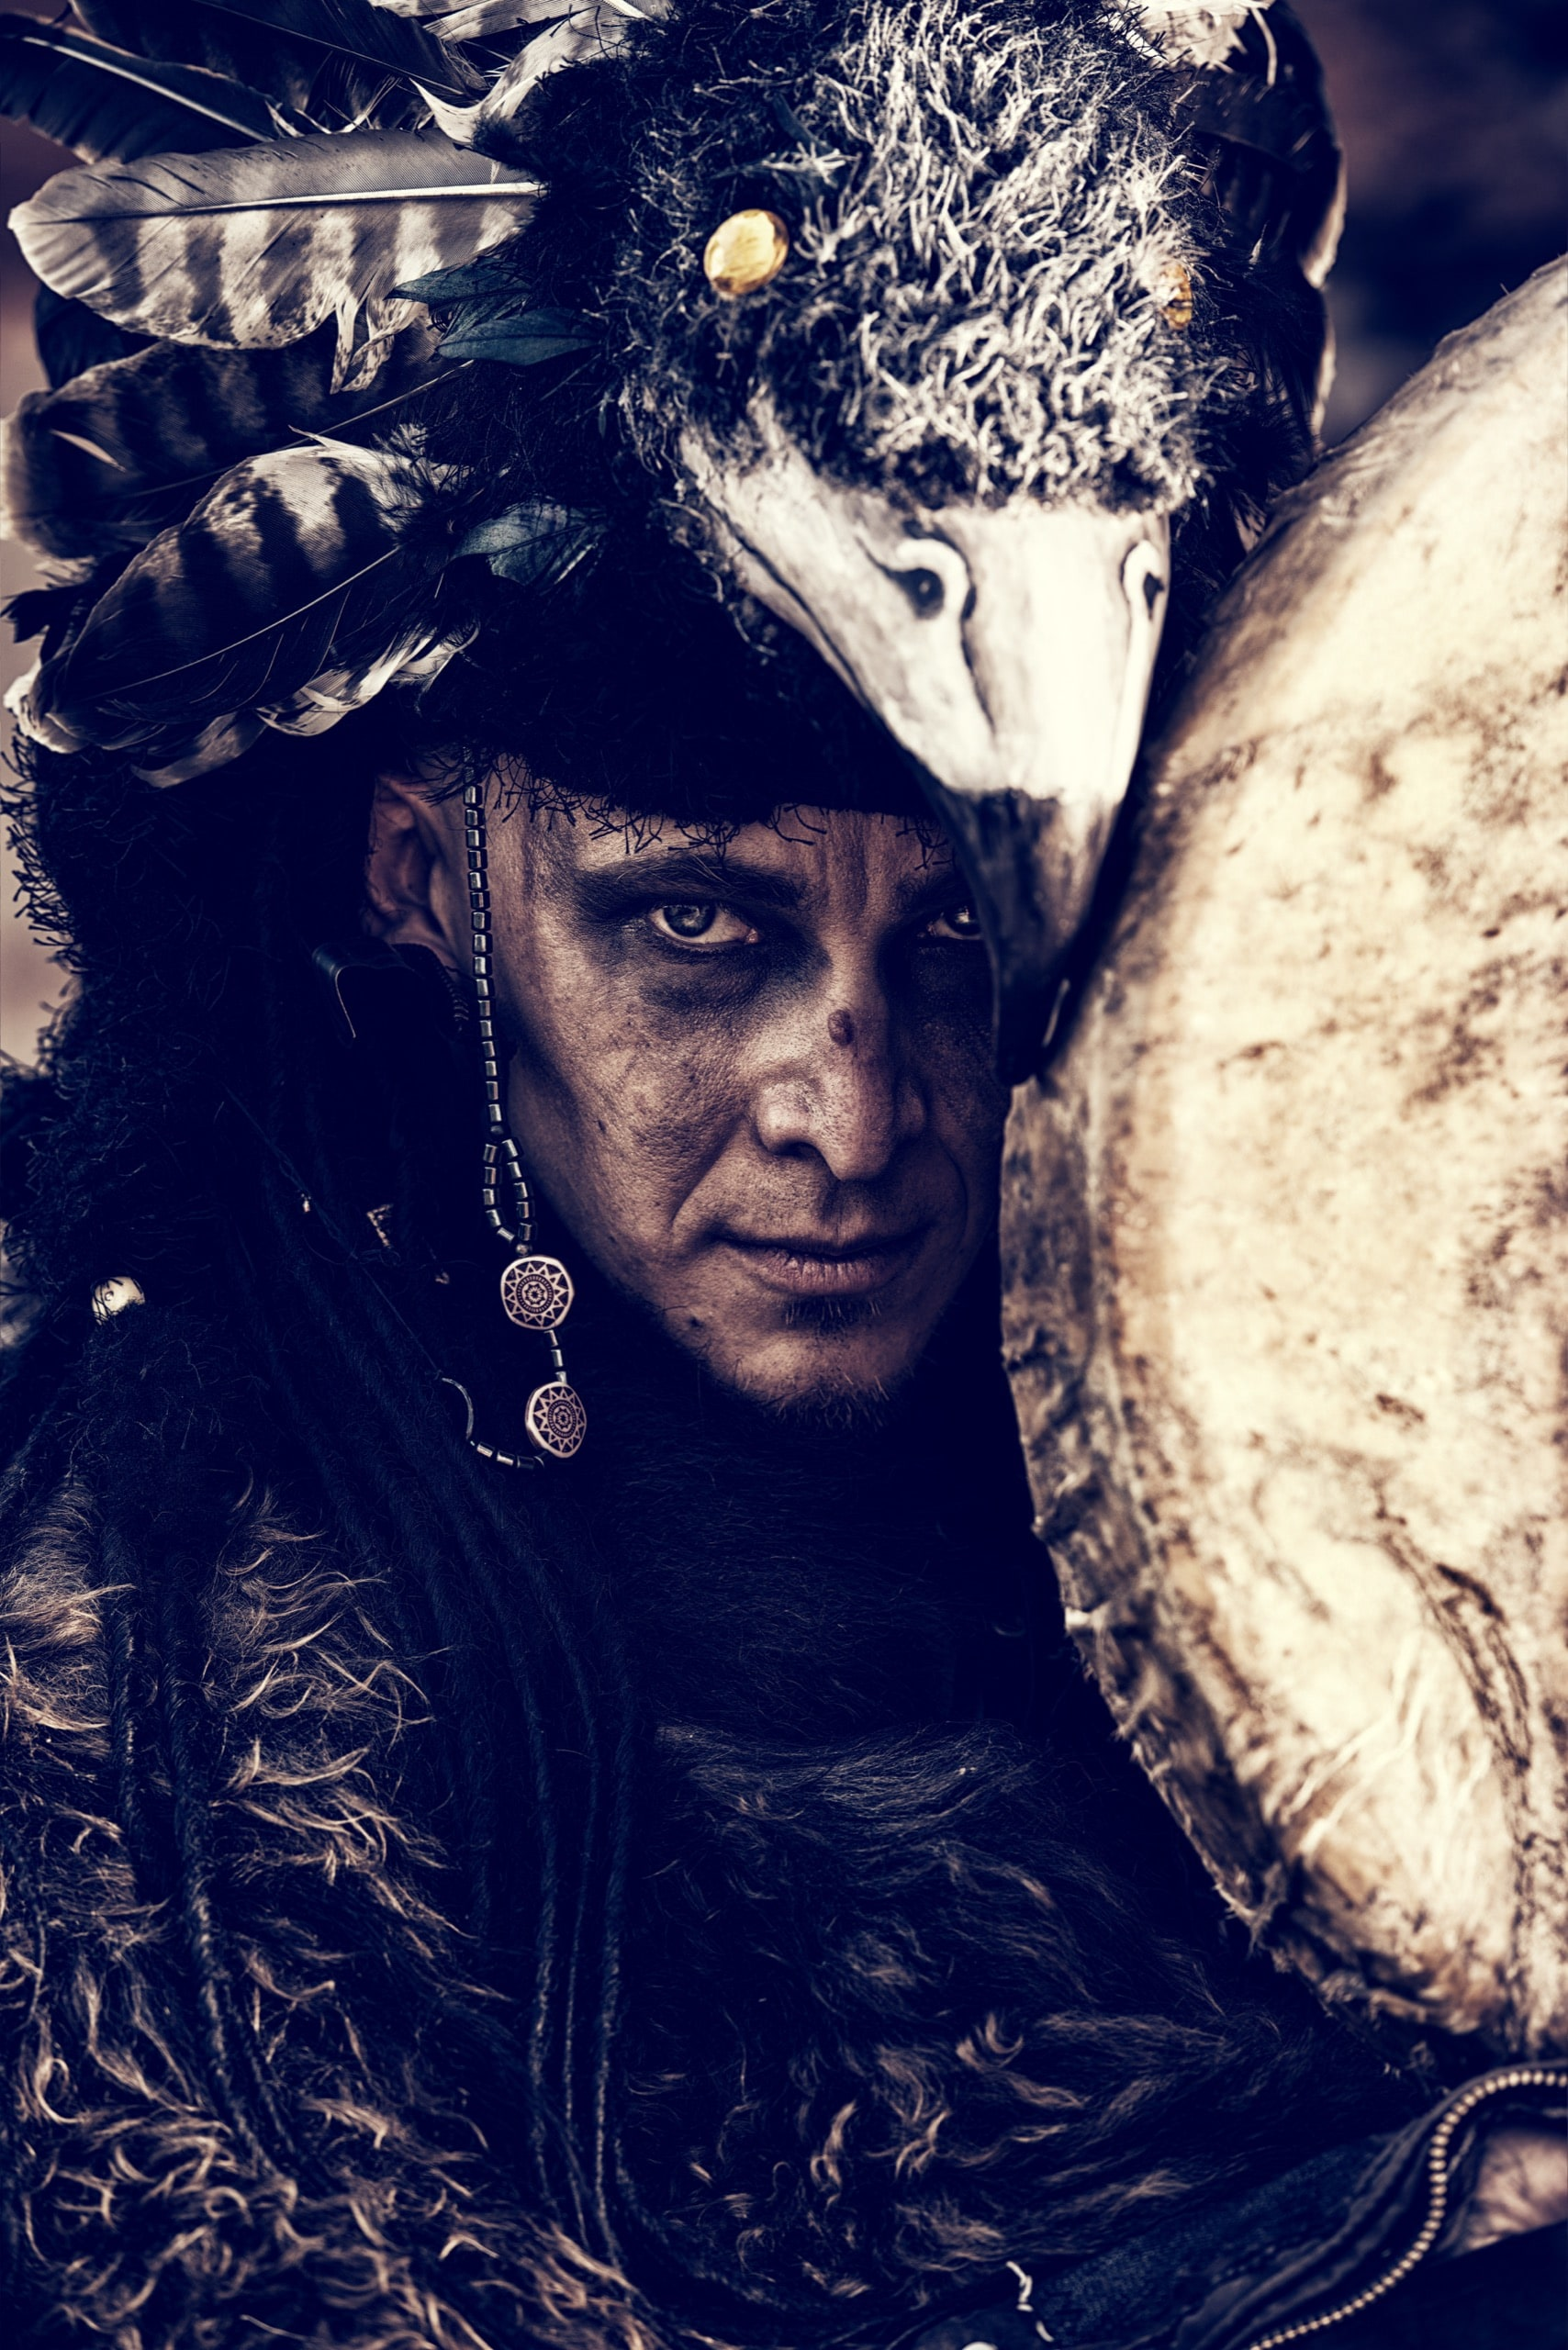 Portrait of a shaman with a drum outdoor.